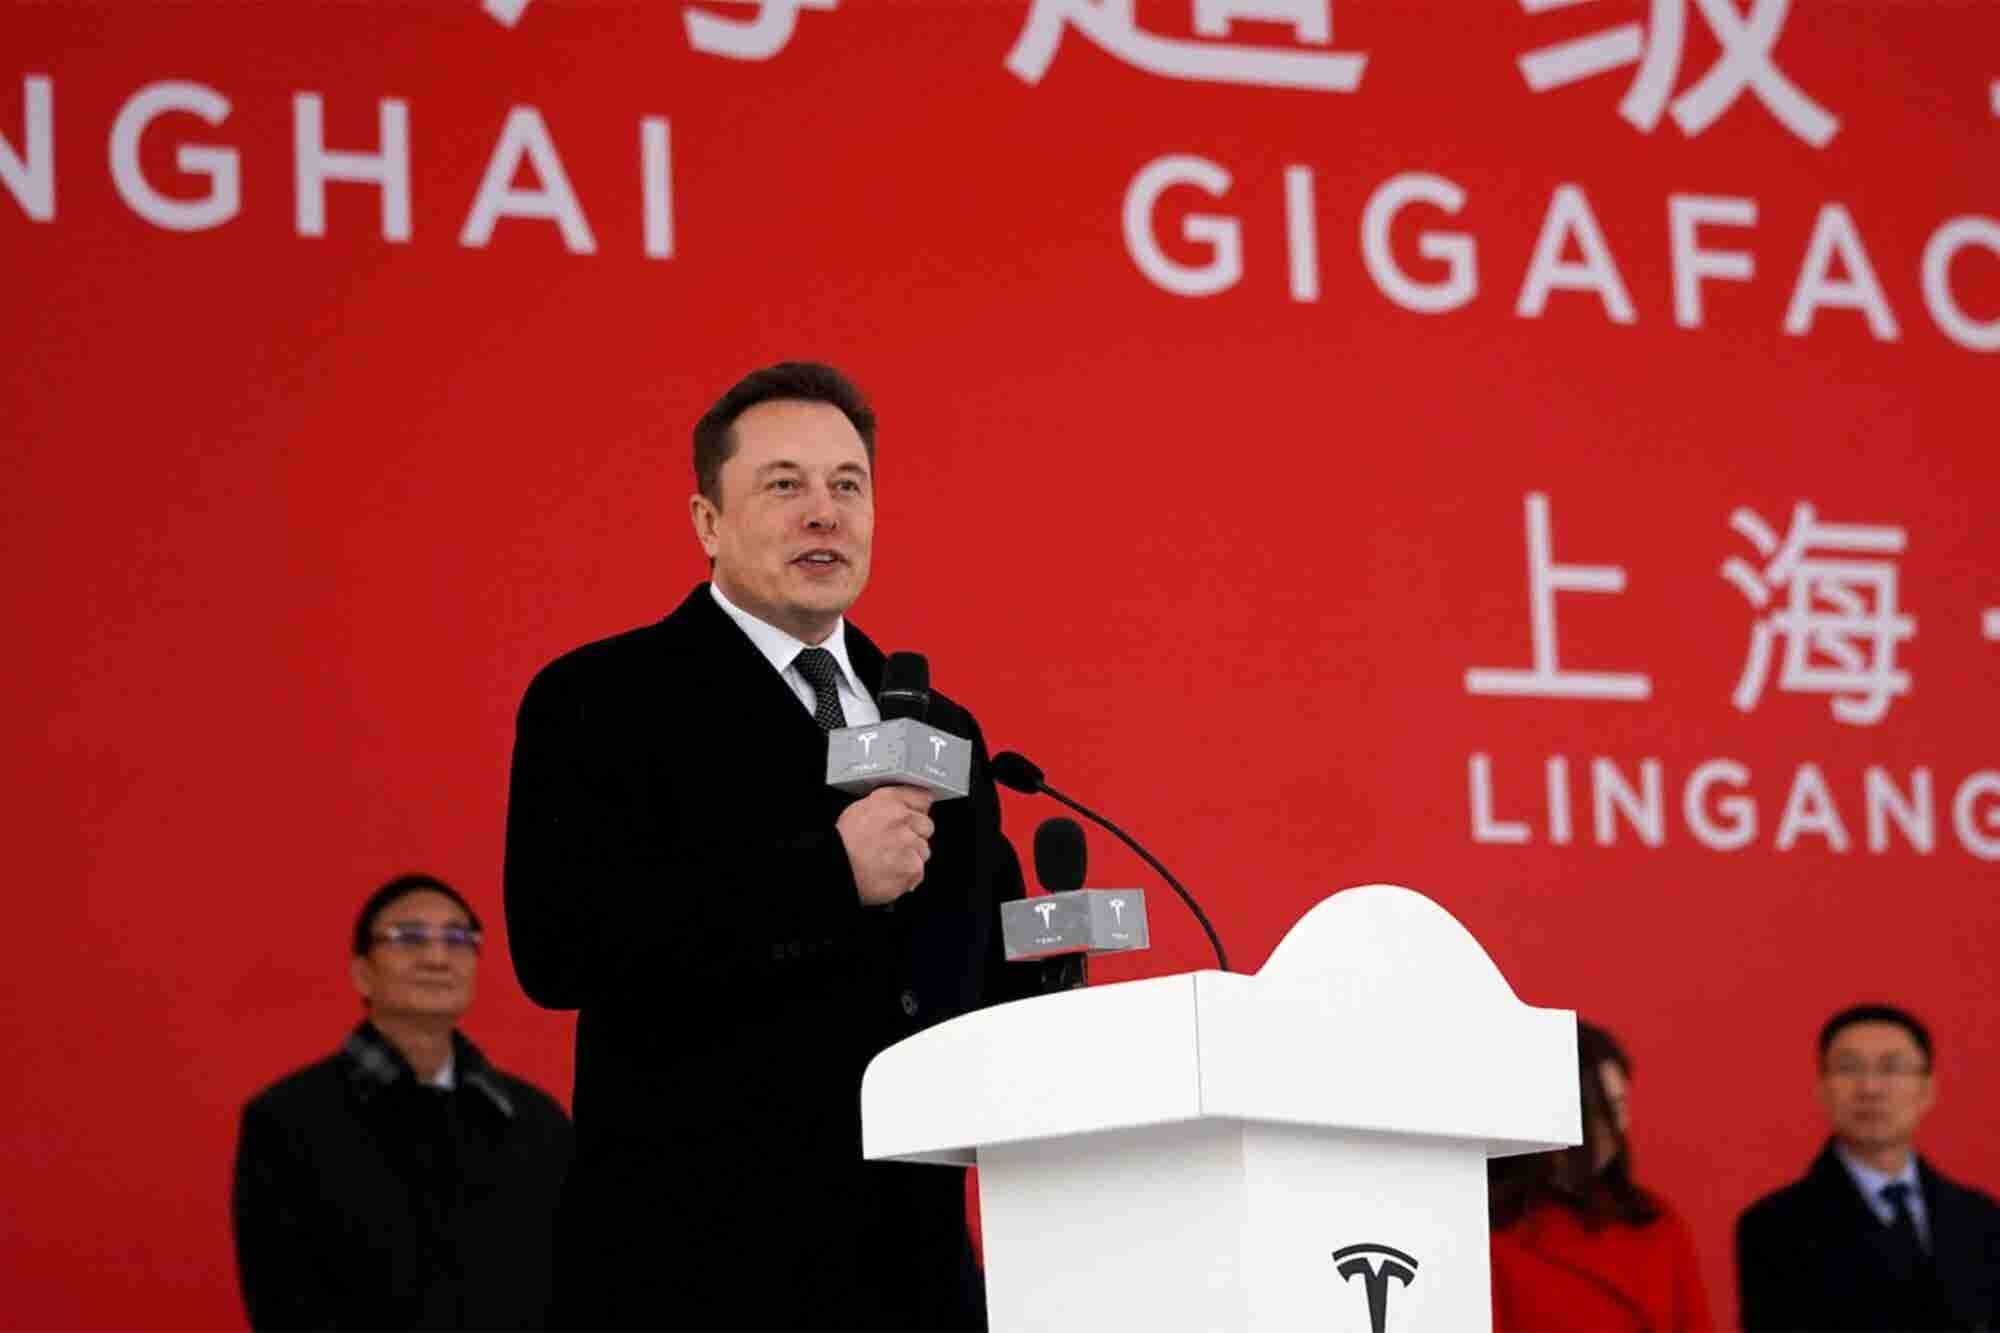 Elon Musk Has Started Building a Tesla Gigafactory in China, and It Co...